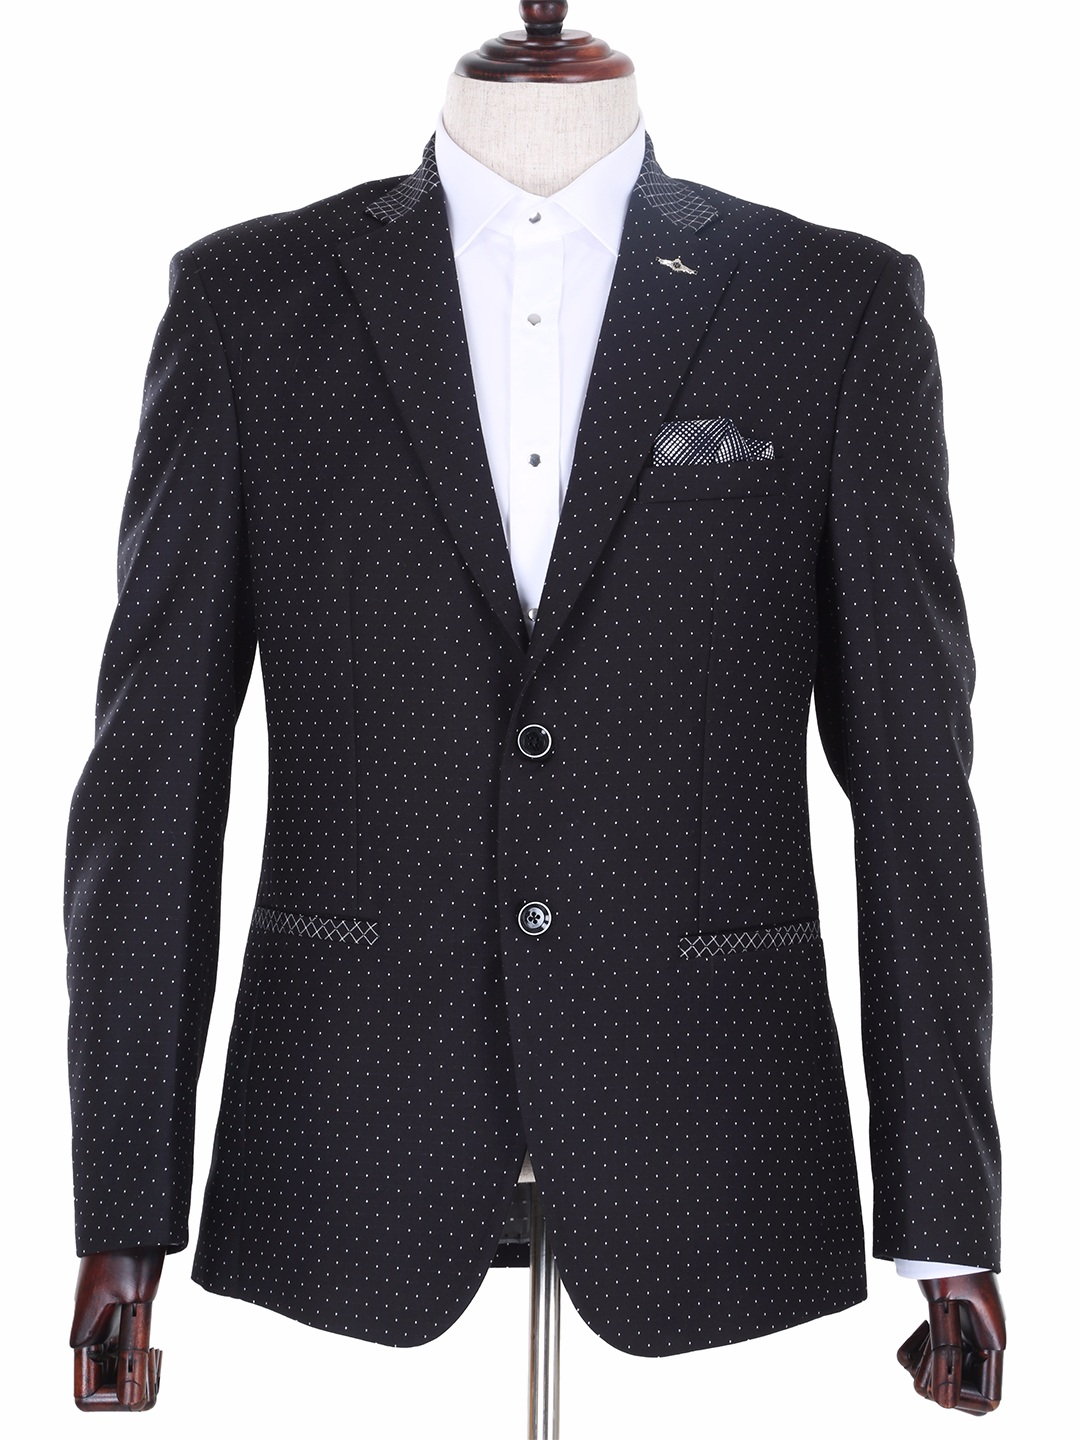 Get Discounts on SKU#KR Mens Black Cotton Velvet Blazer on hereyfiletk.gq(89).